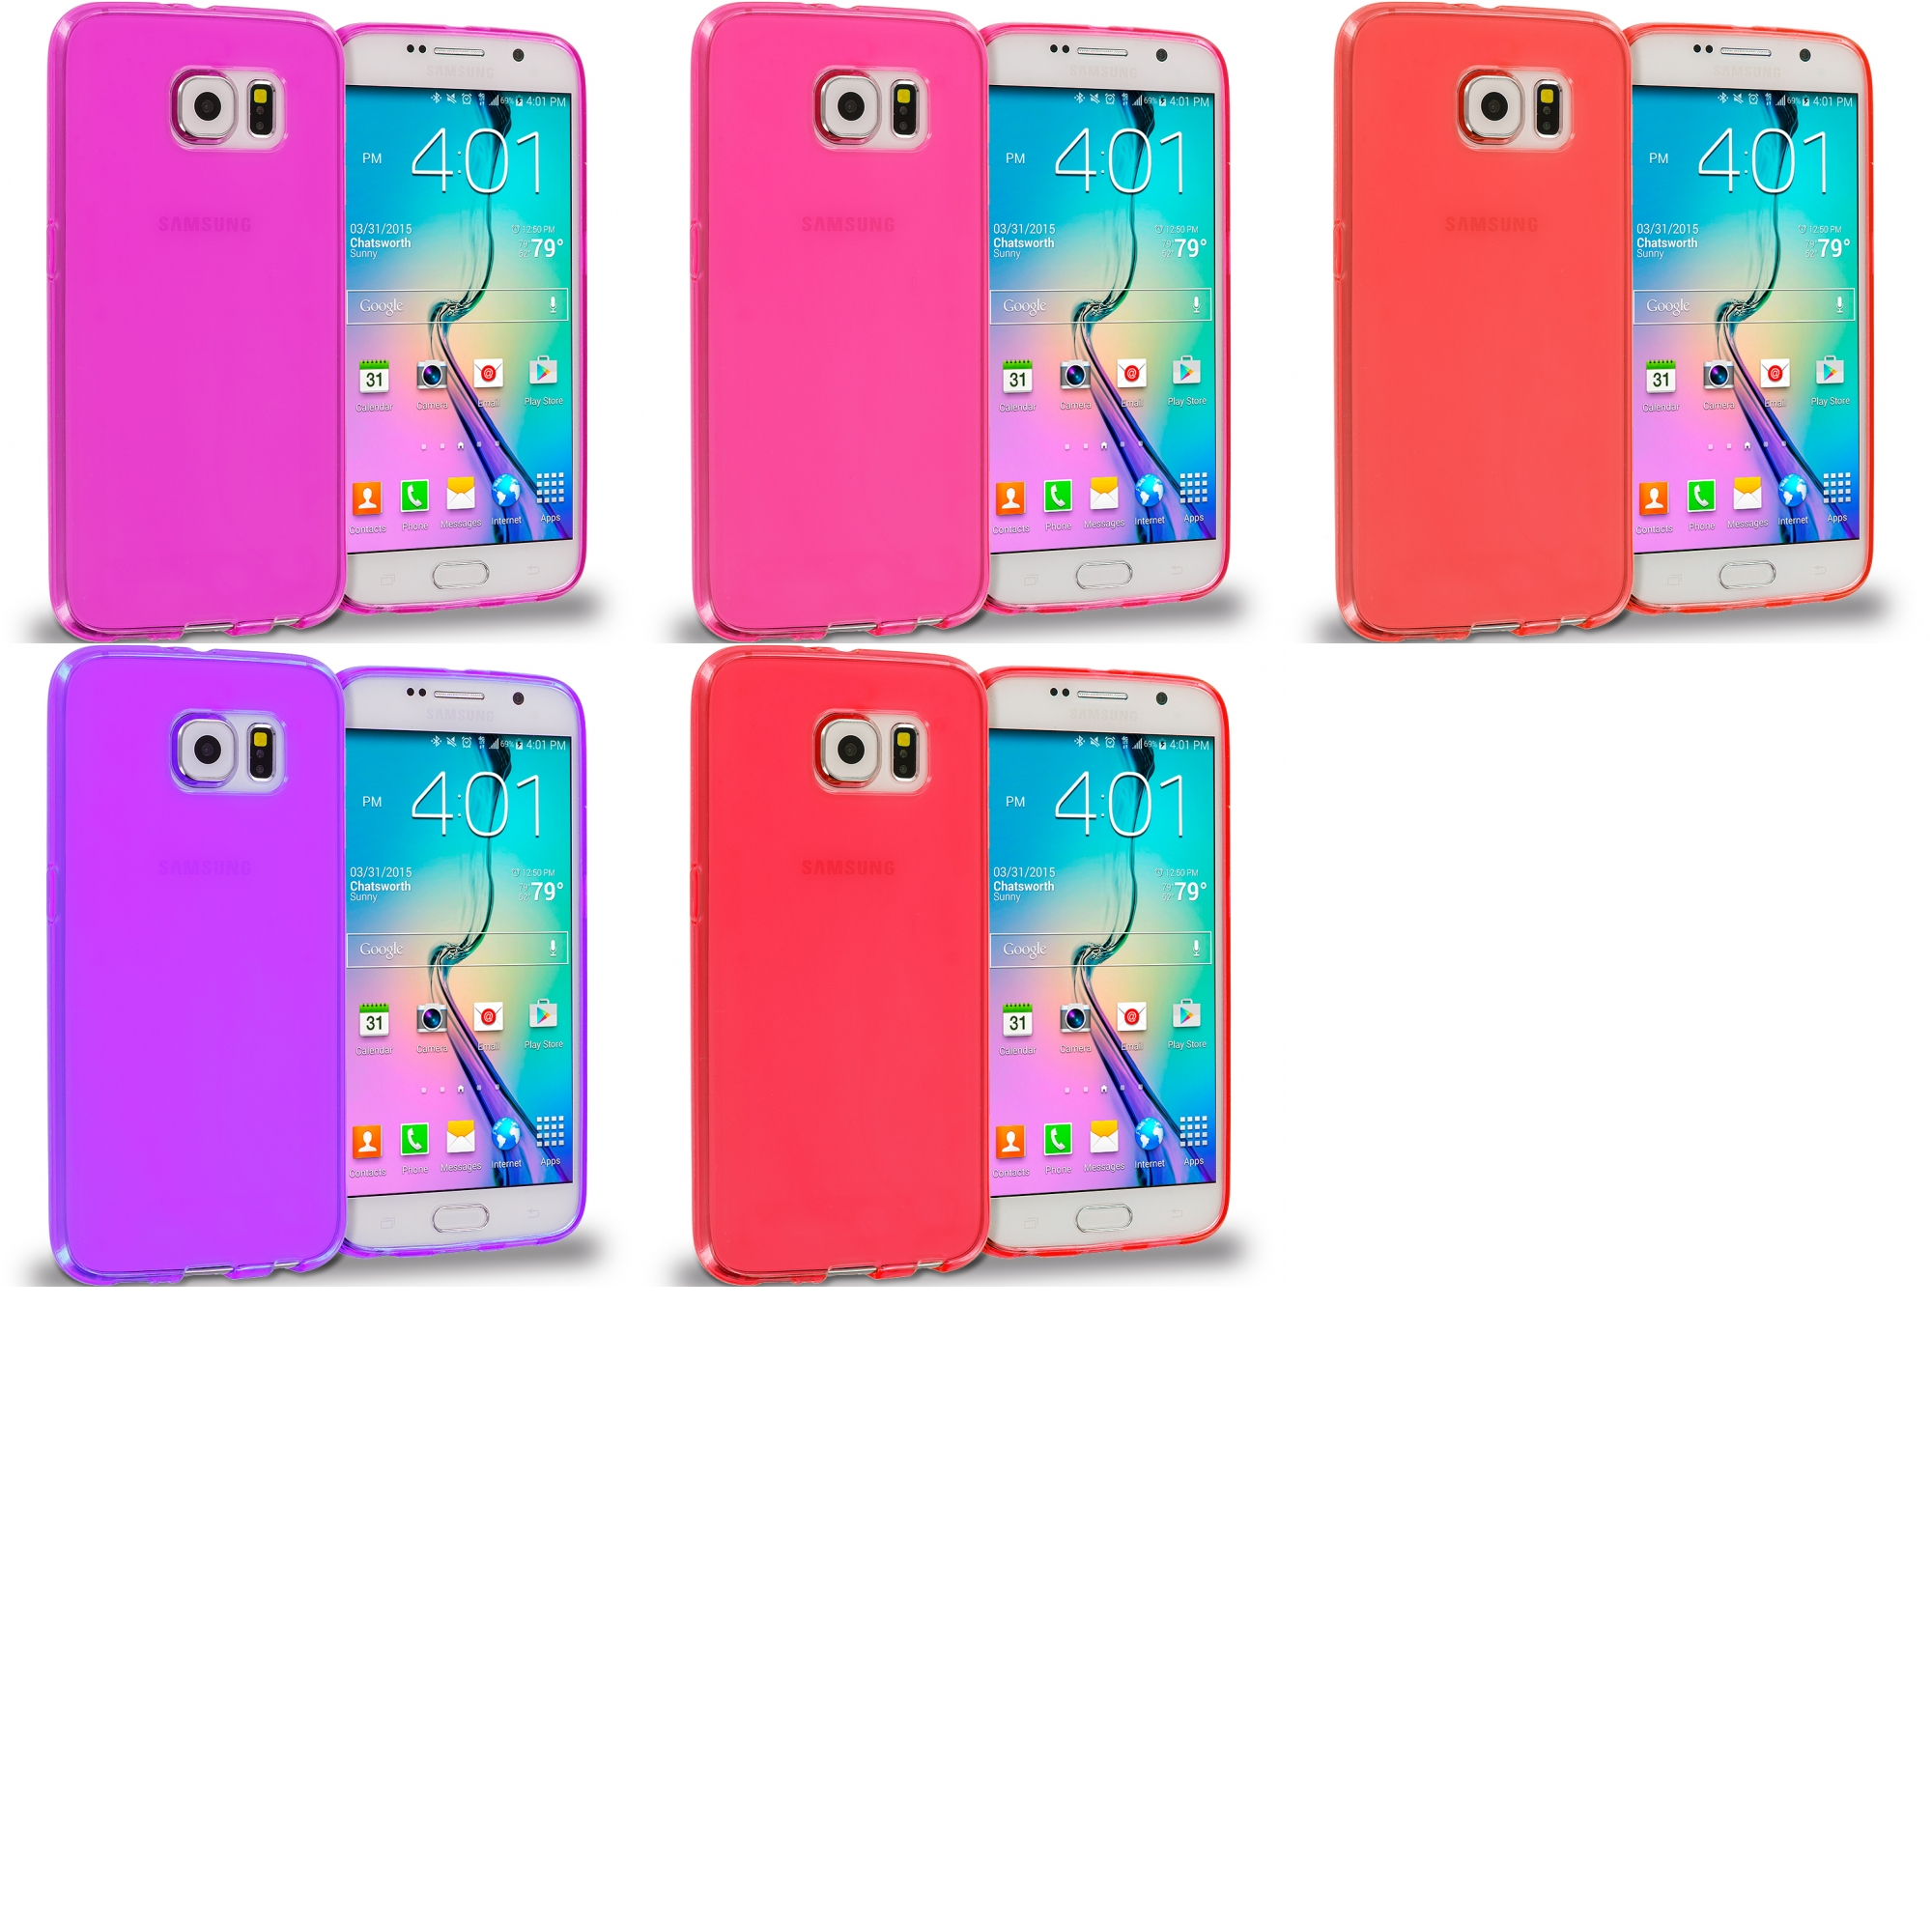 Samsung Galaxy S6 Combo Pack : Hot Pink Plain TPU Rubber Skin Case Cover